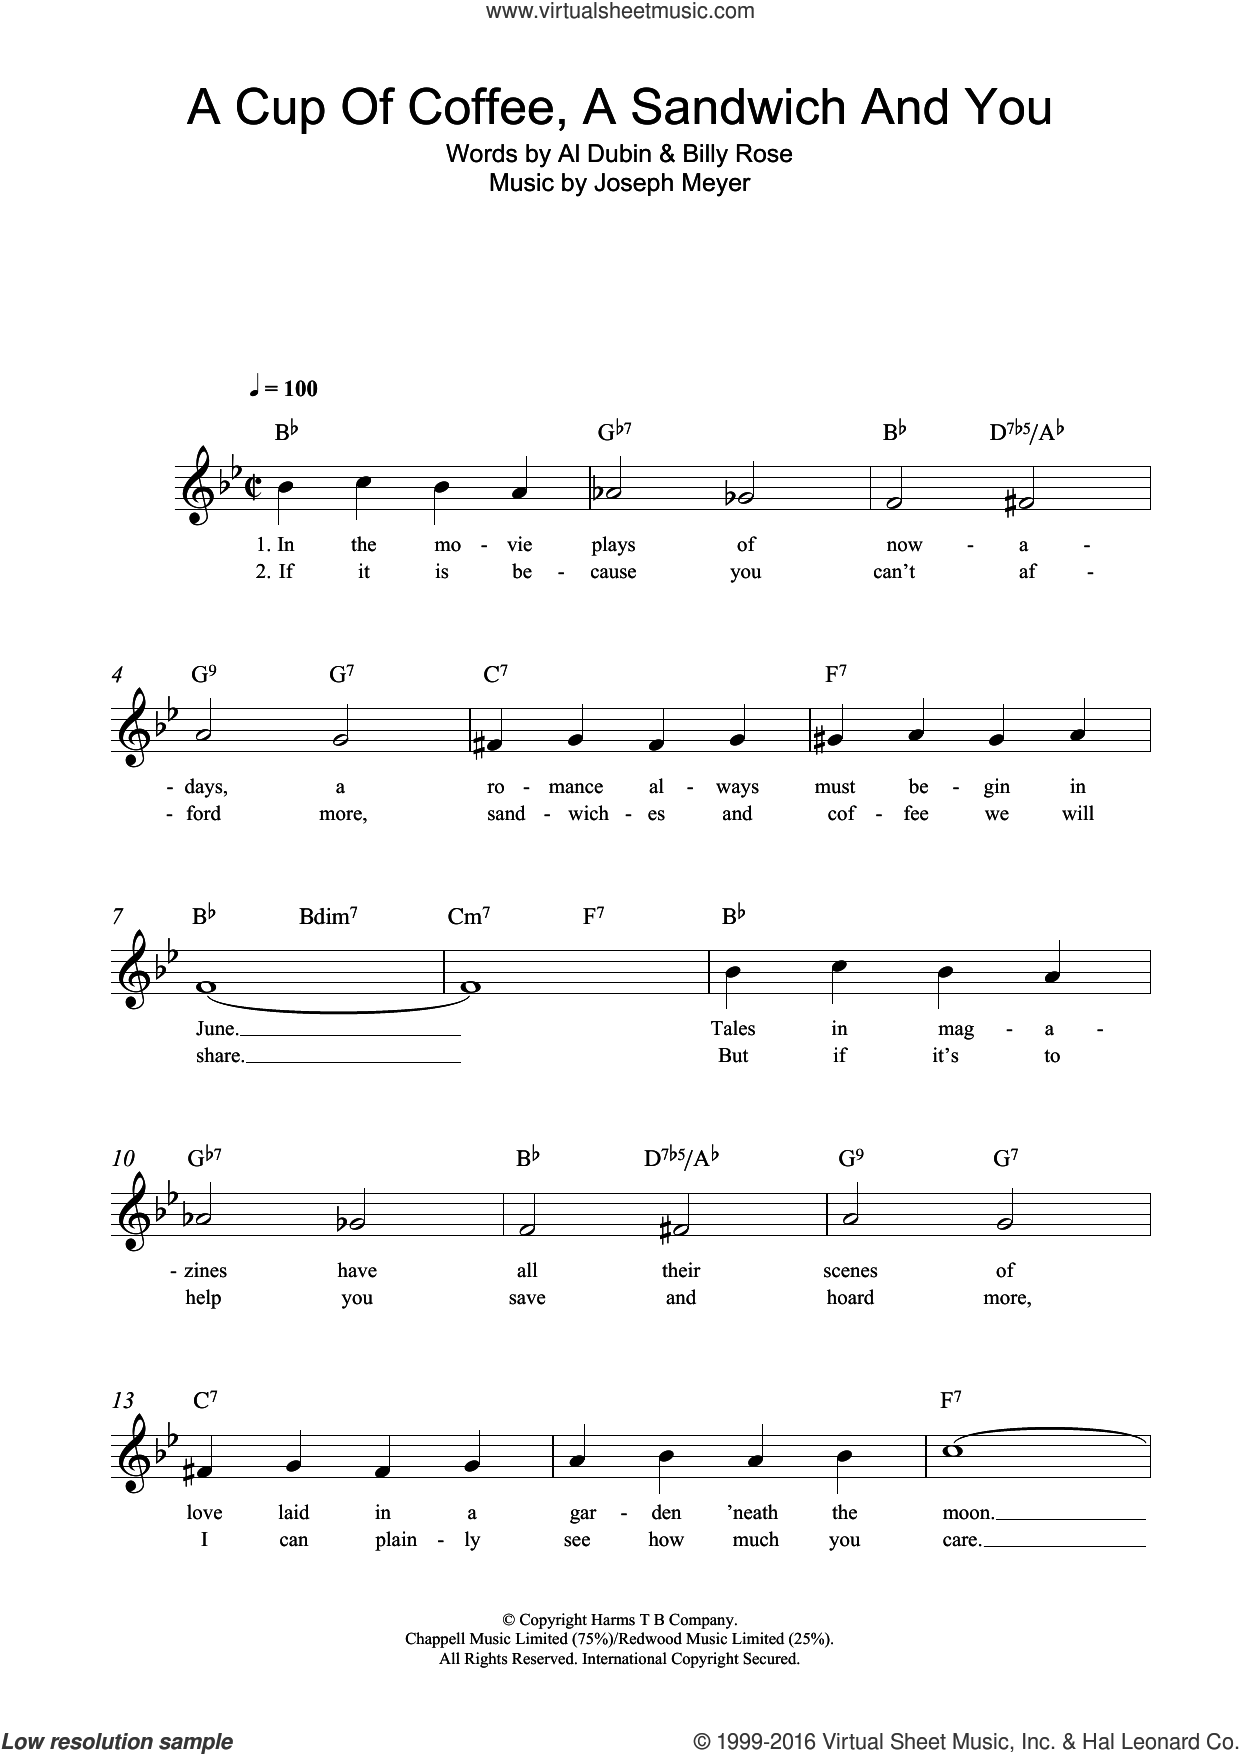 A Cup Of Coffee, A Sandwich And You sheet music for voice and other instruments (fake book) by Billy Rose, Al Dubin and Joseph Meyer. Score Image Preview.